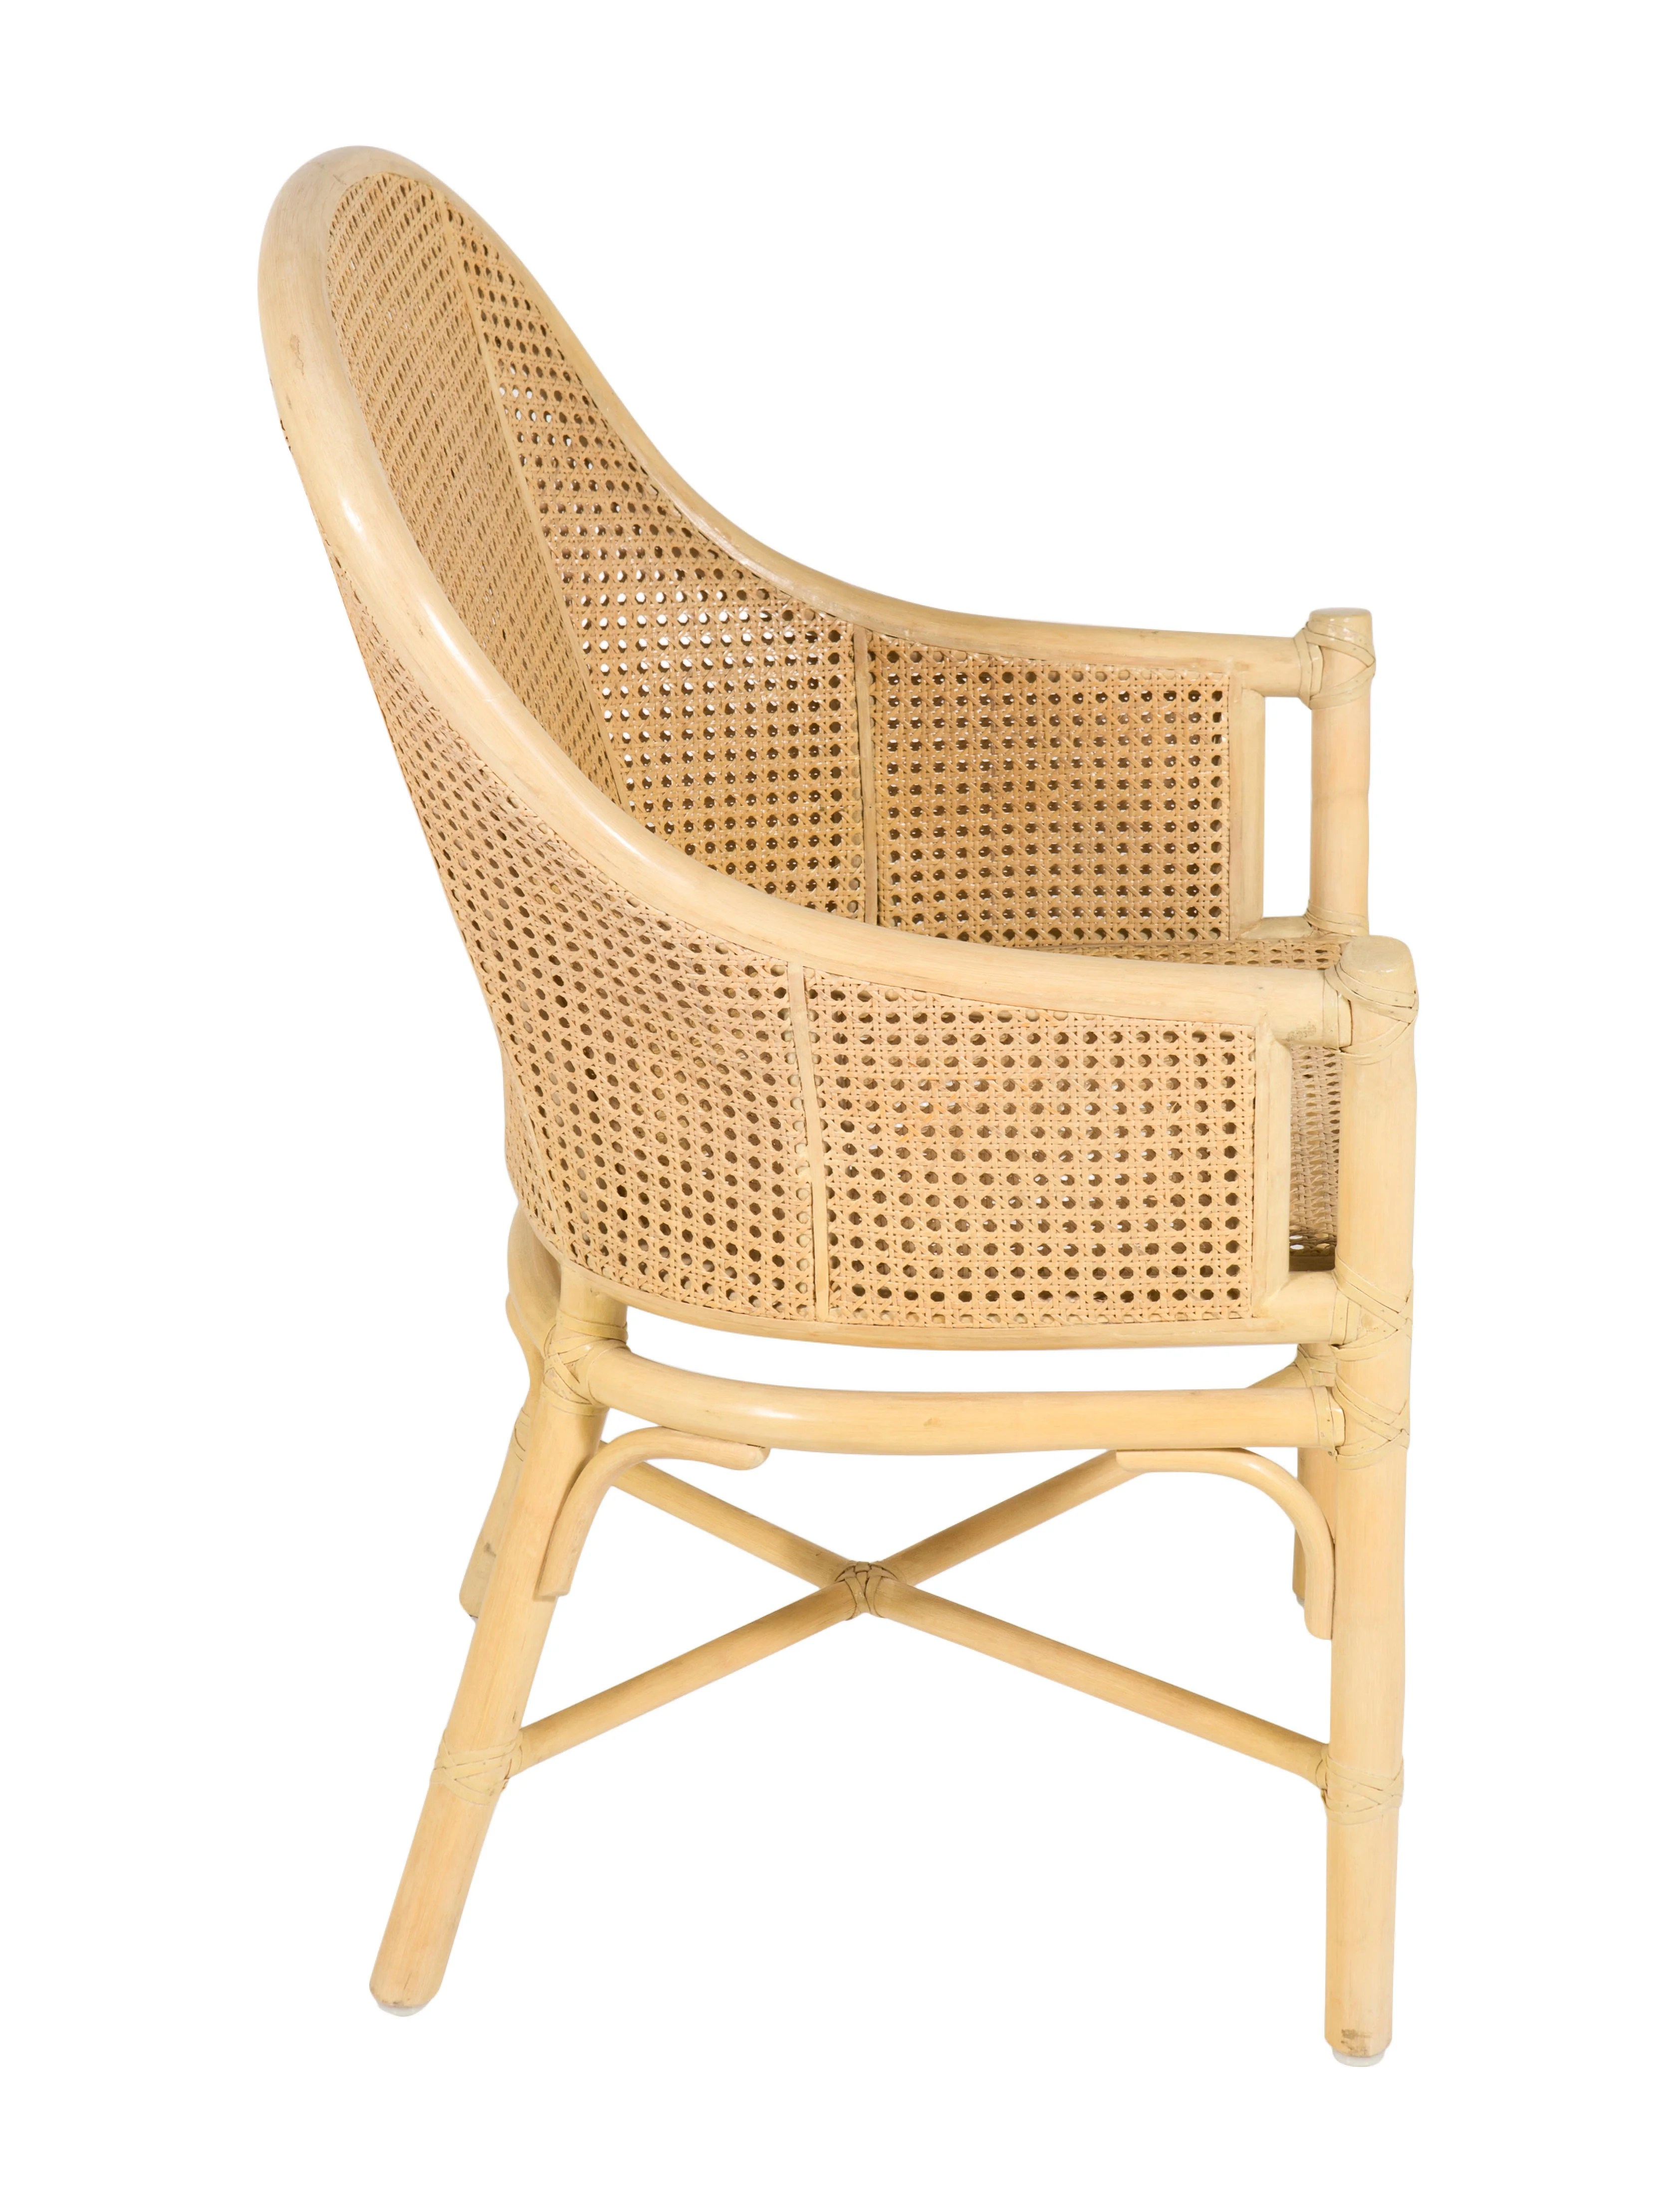 how do you cane a chair swing chairs in vijayawada bucket furniture chair20283 the